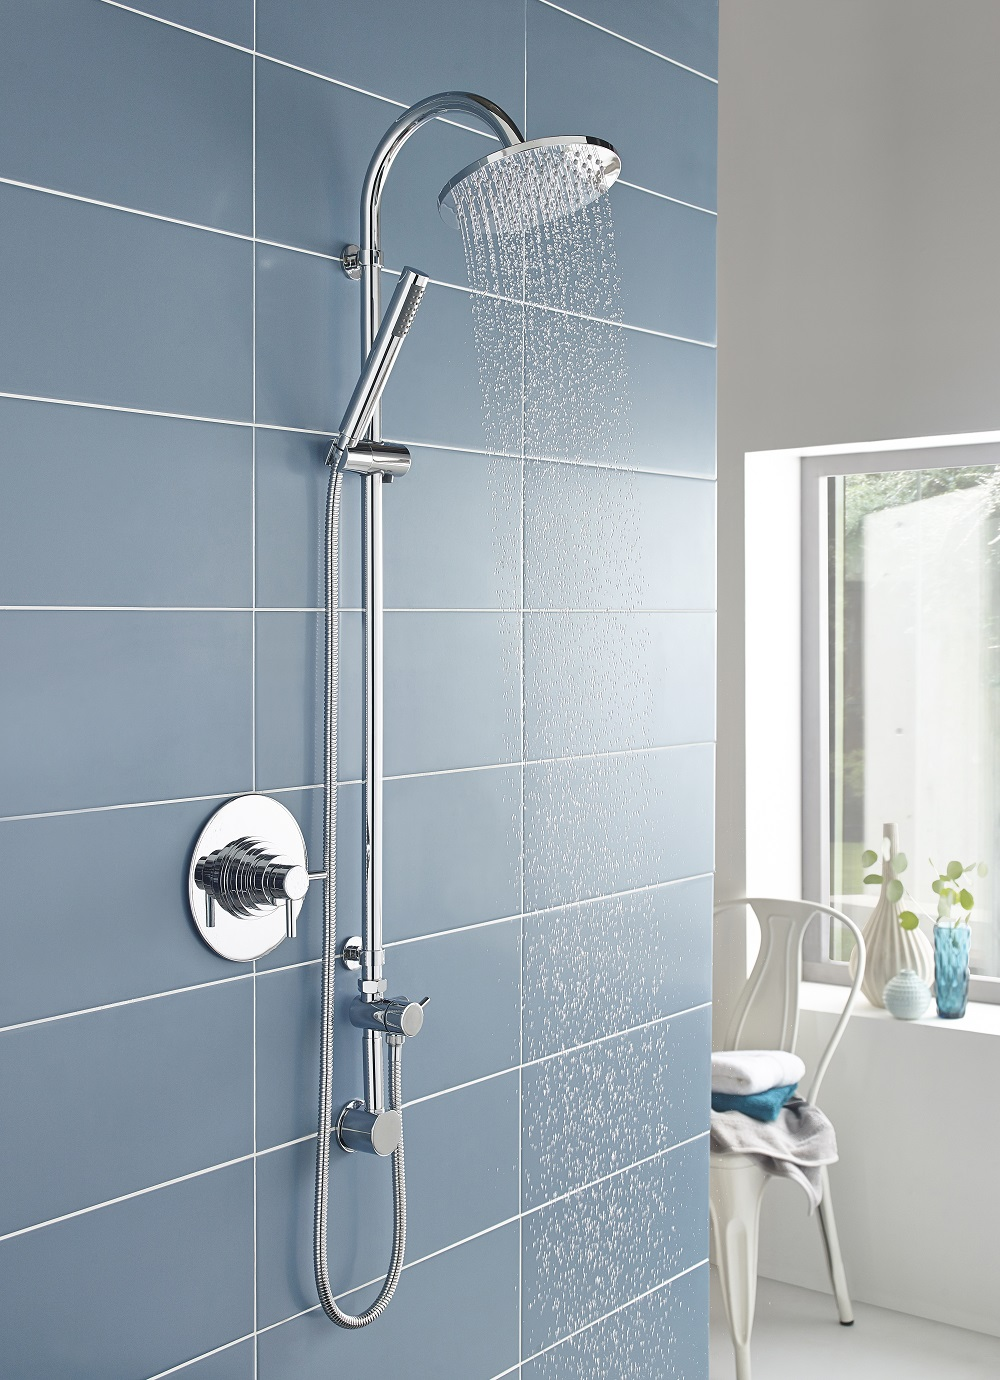 Top Bathroom Cleaning Tips & Maintenance Guide